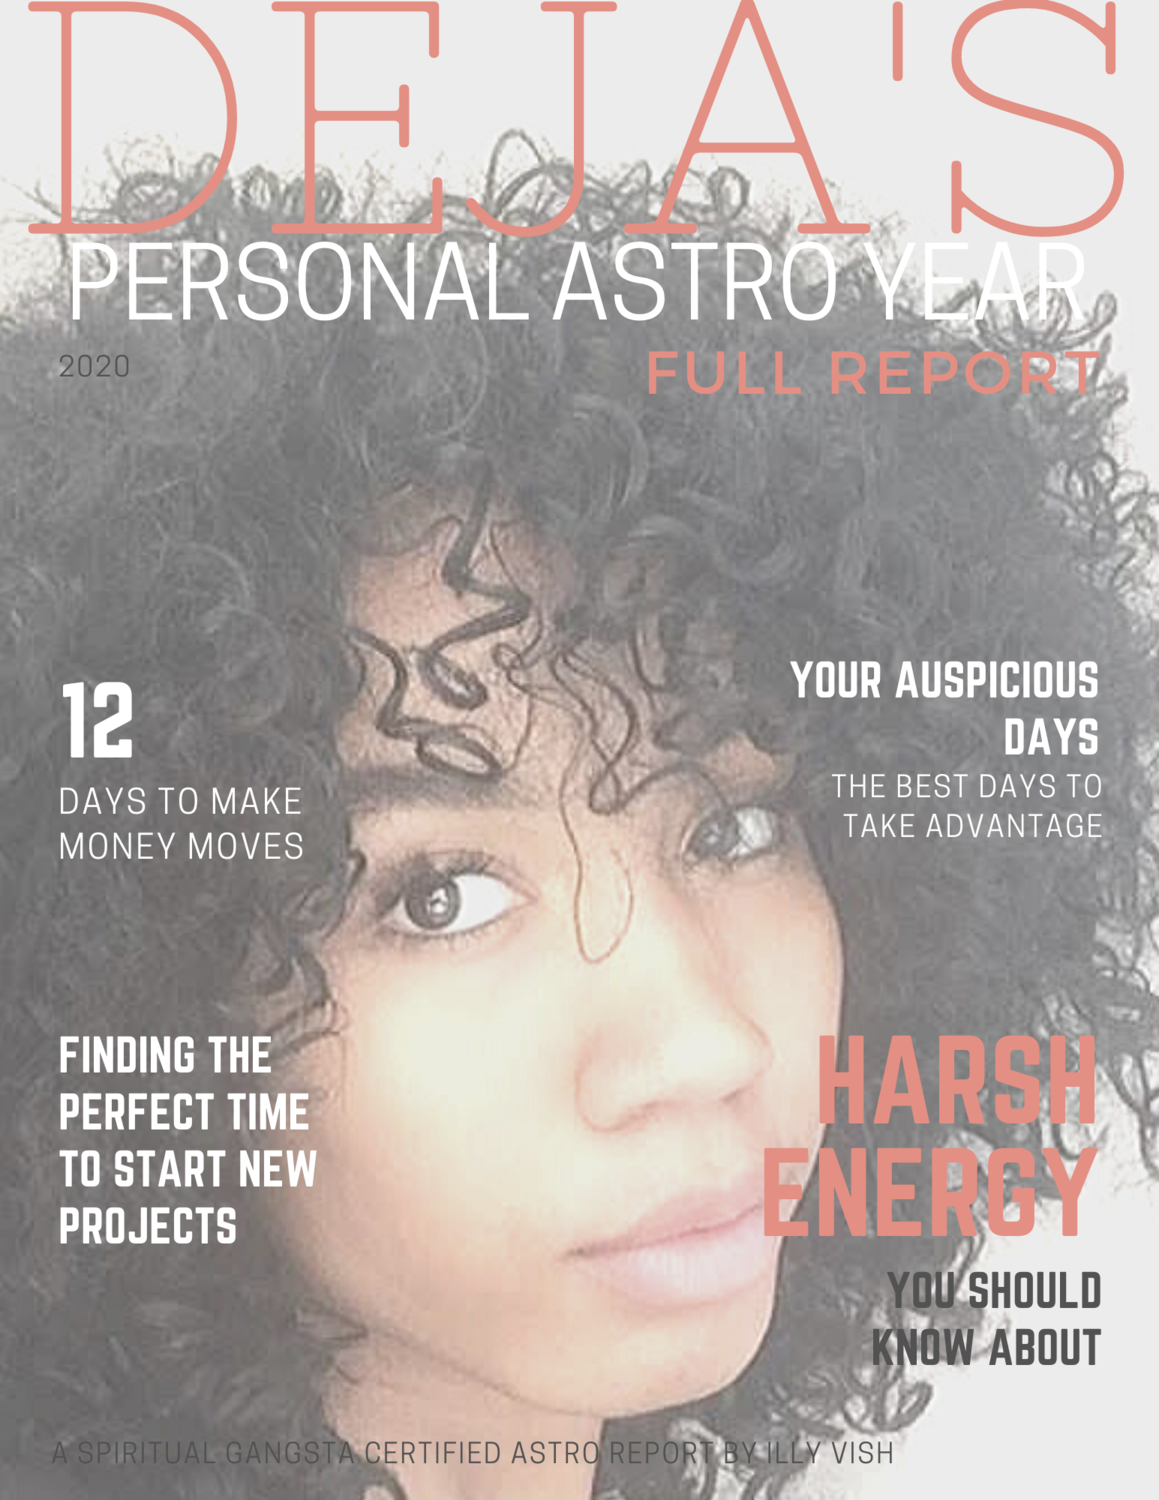 Personalized Astrological Year Magazine Style Full PDF Report